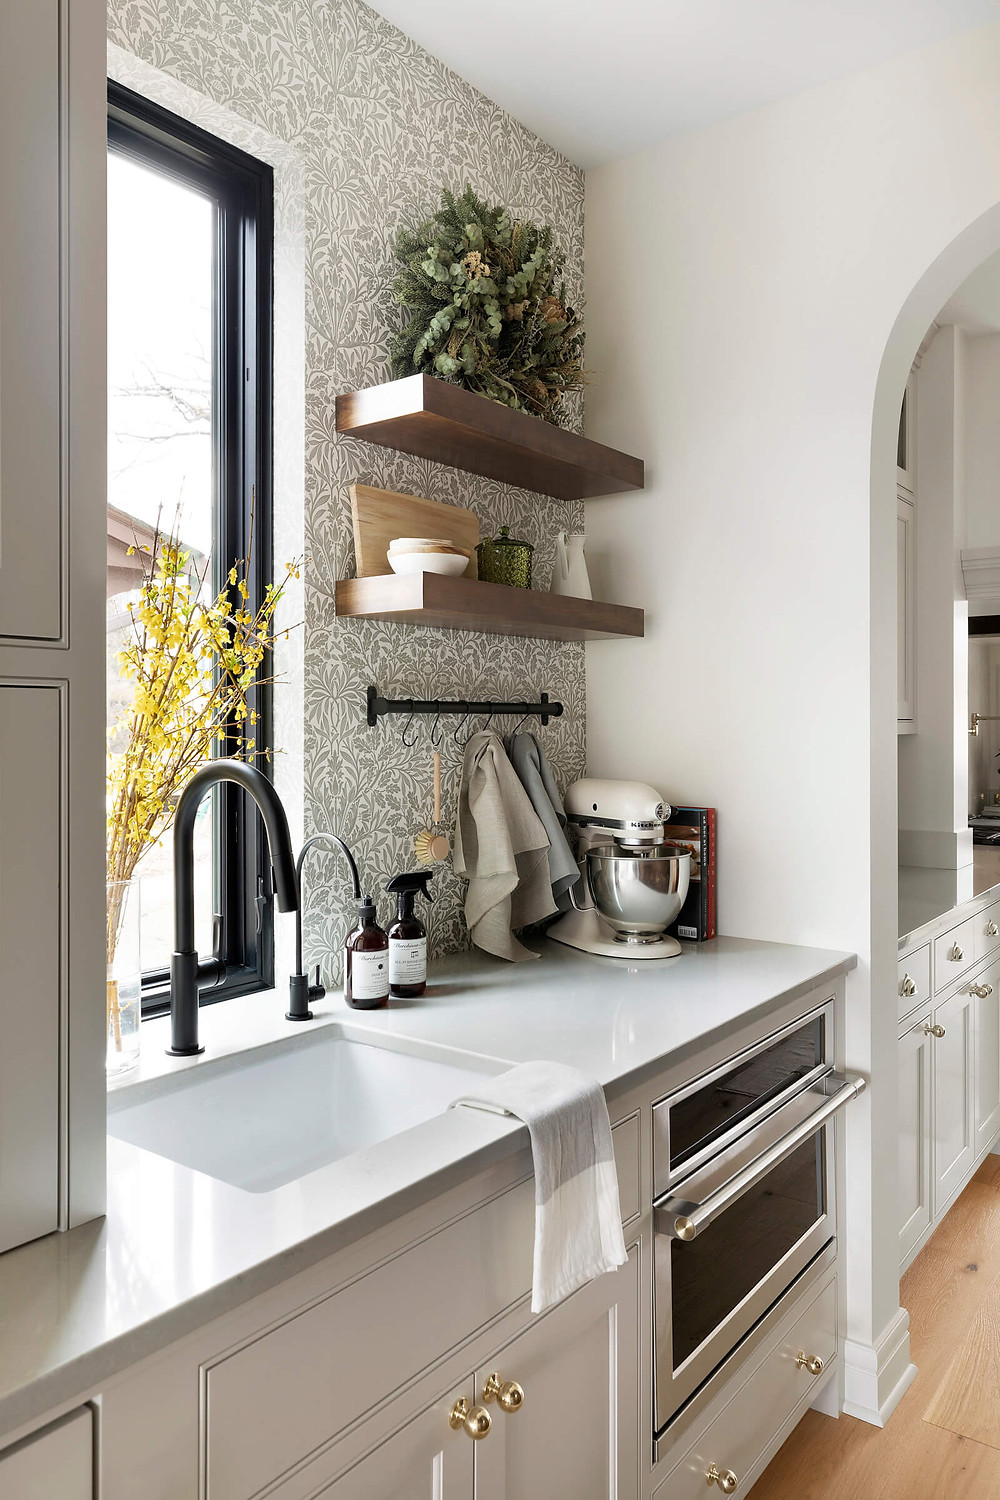 10 ways to add character to your home, customize your pantry. Make it the work horse of your kitchen.